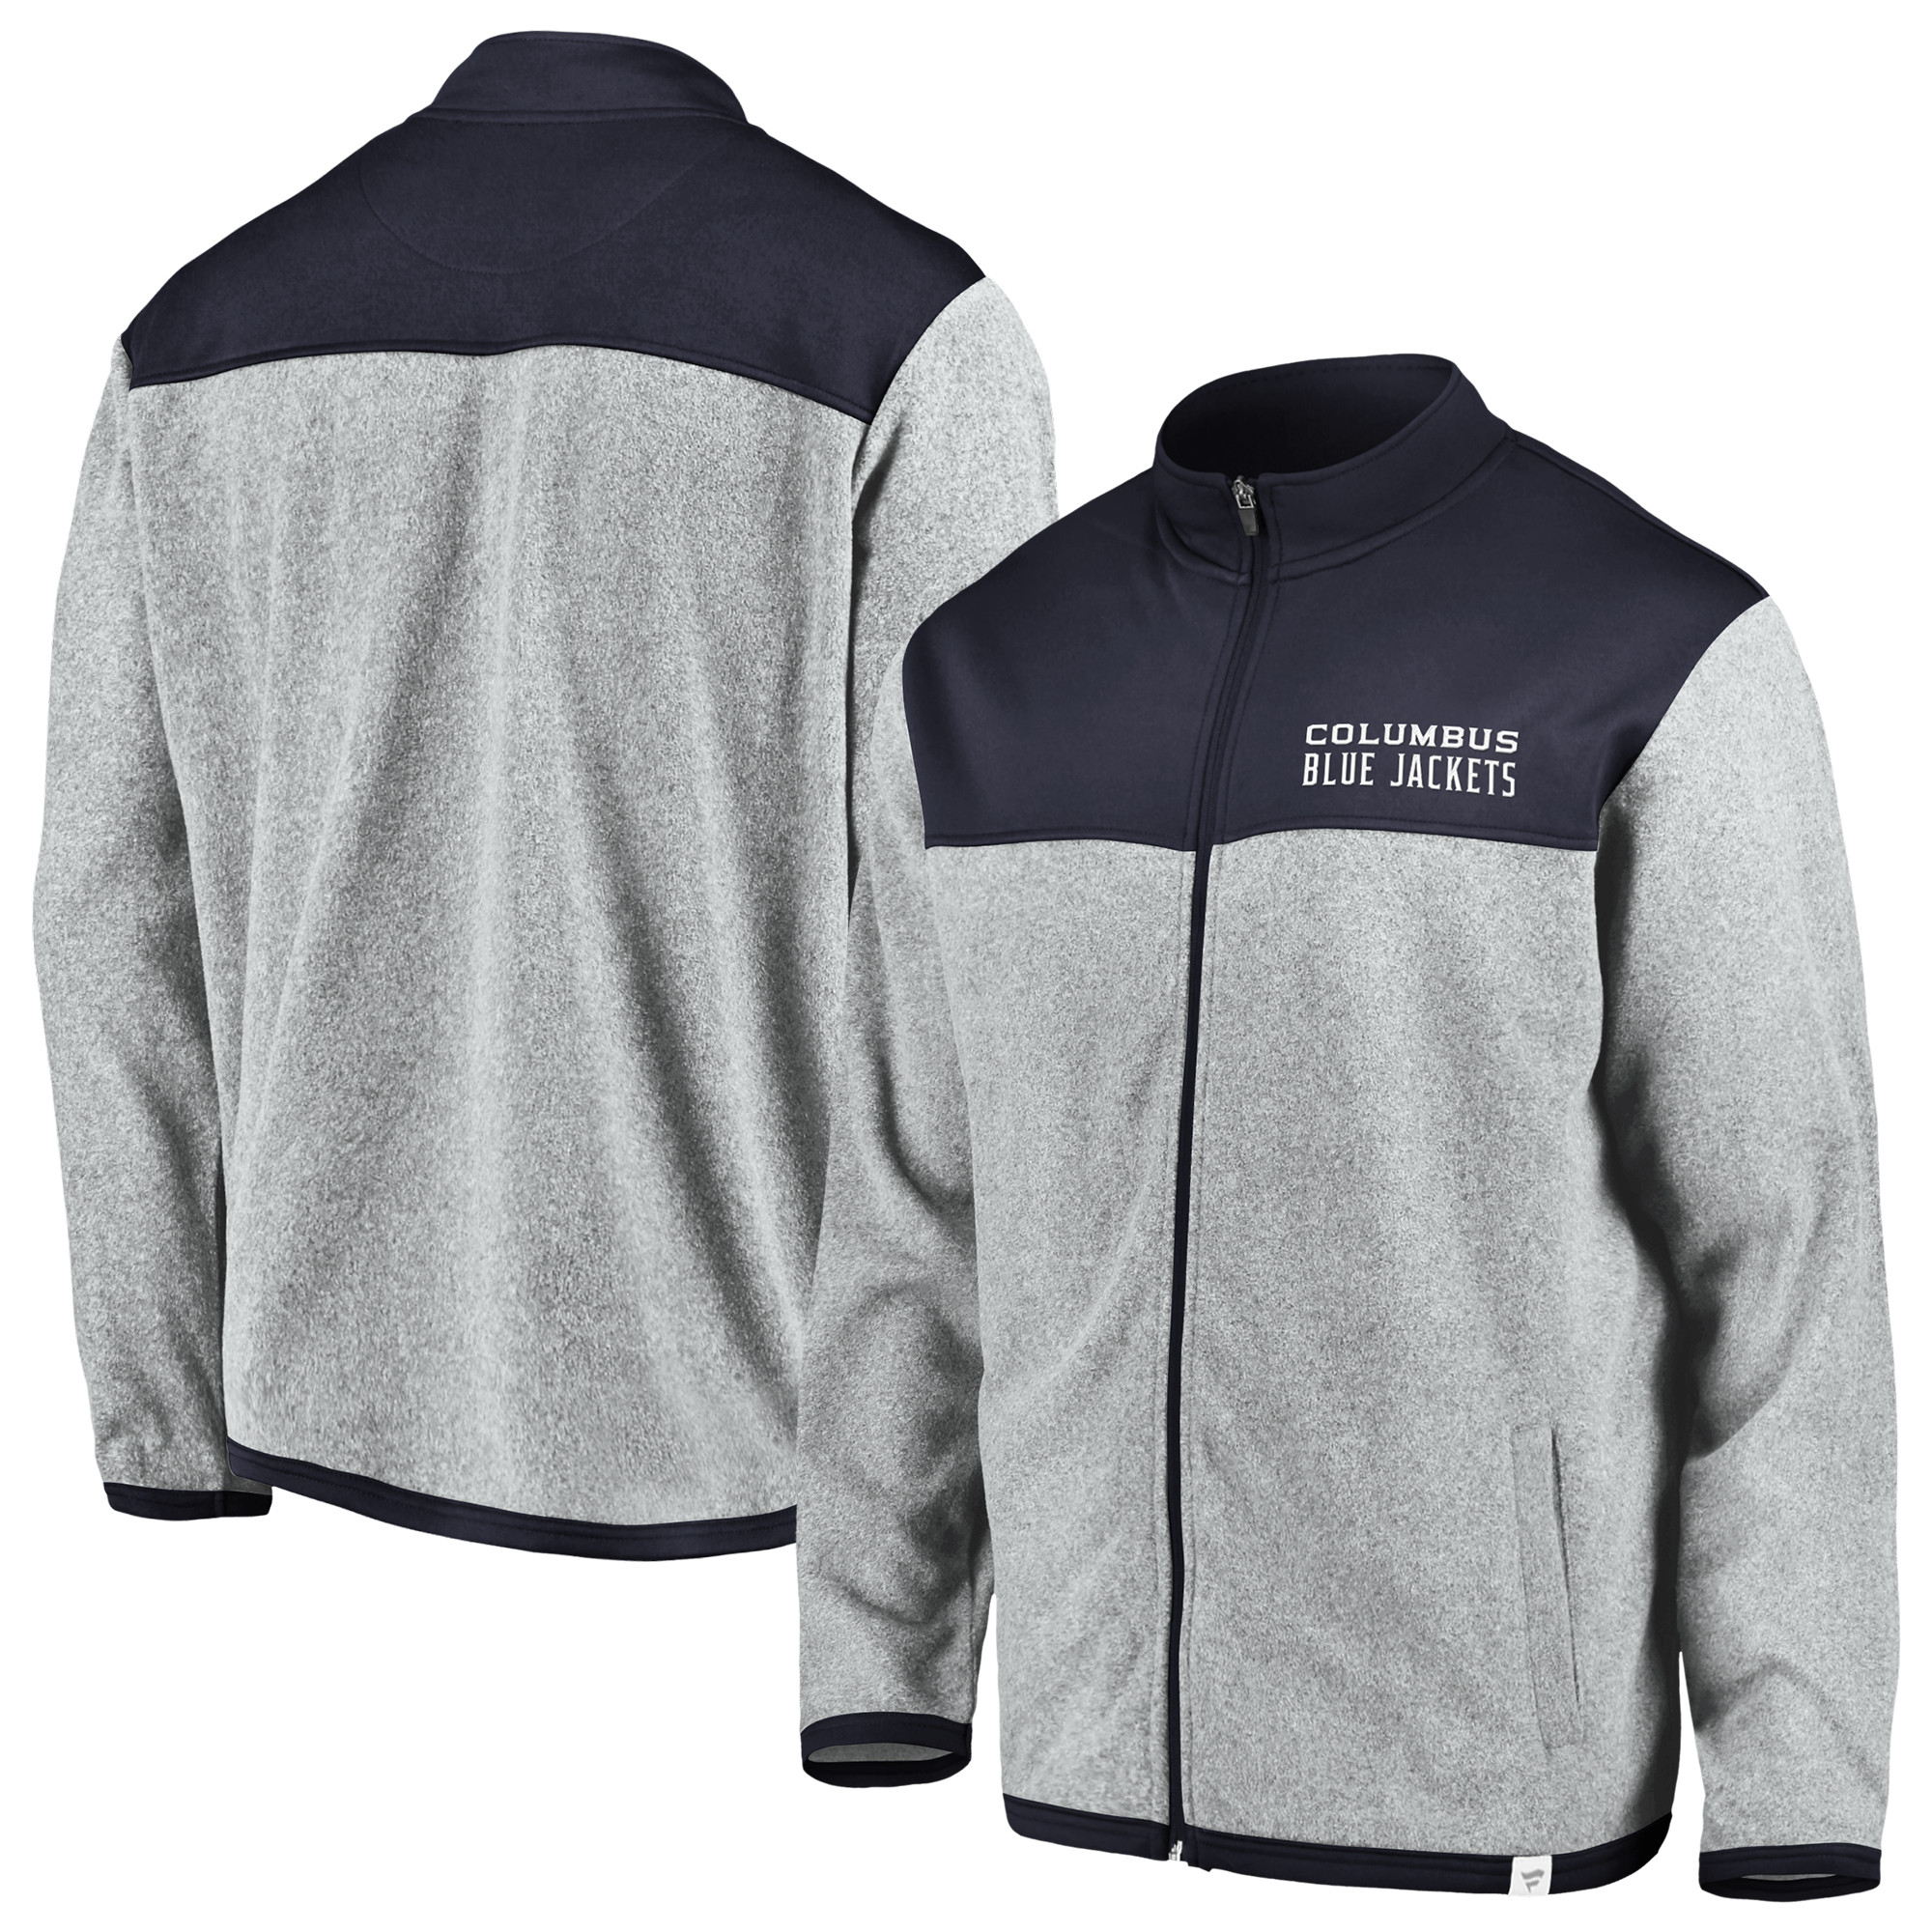 Columbus Blue Jackets Fanatics Branded Polar Full-Zip Jacket - Gray/Navy